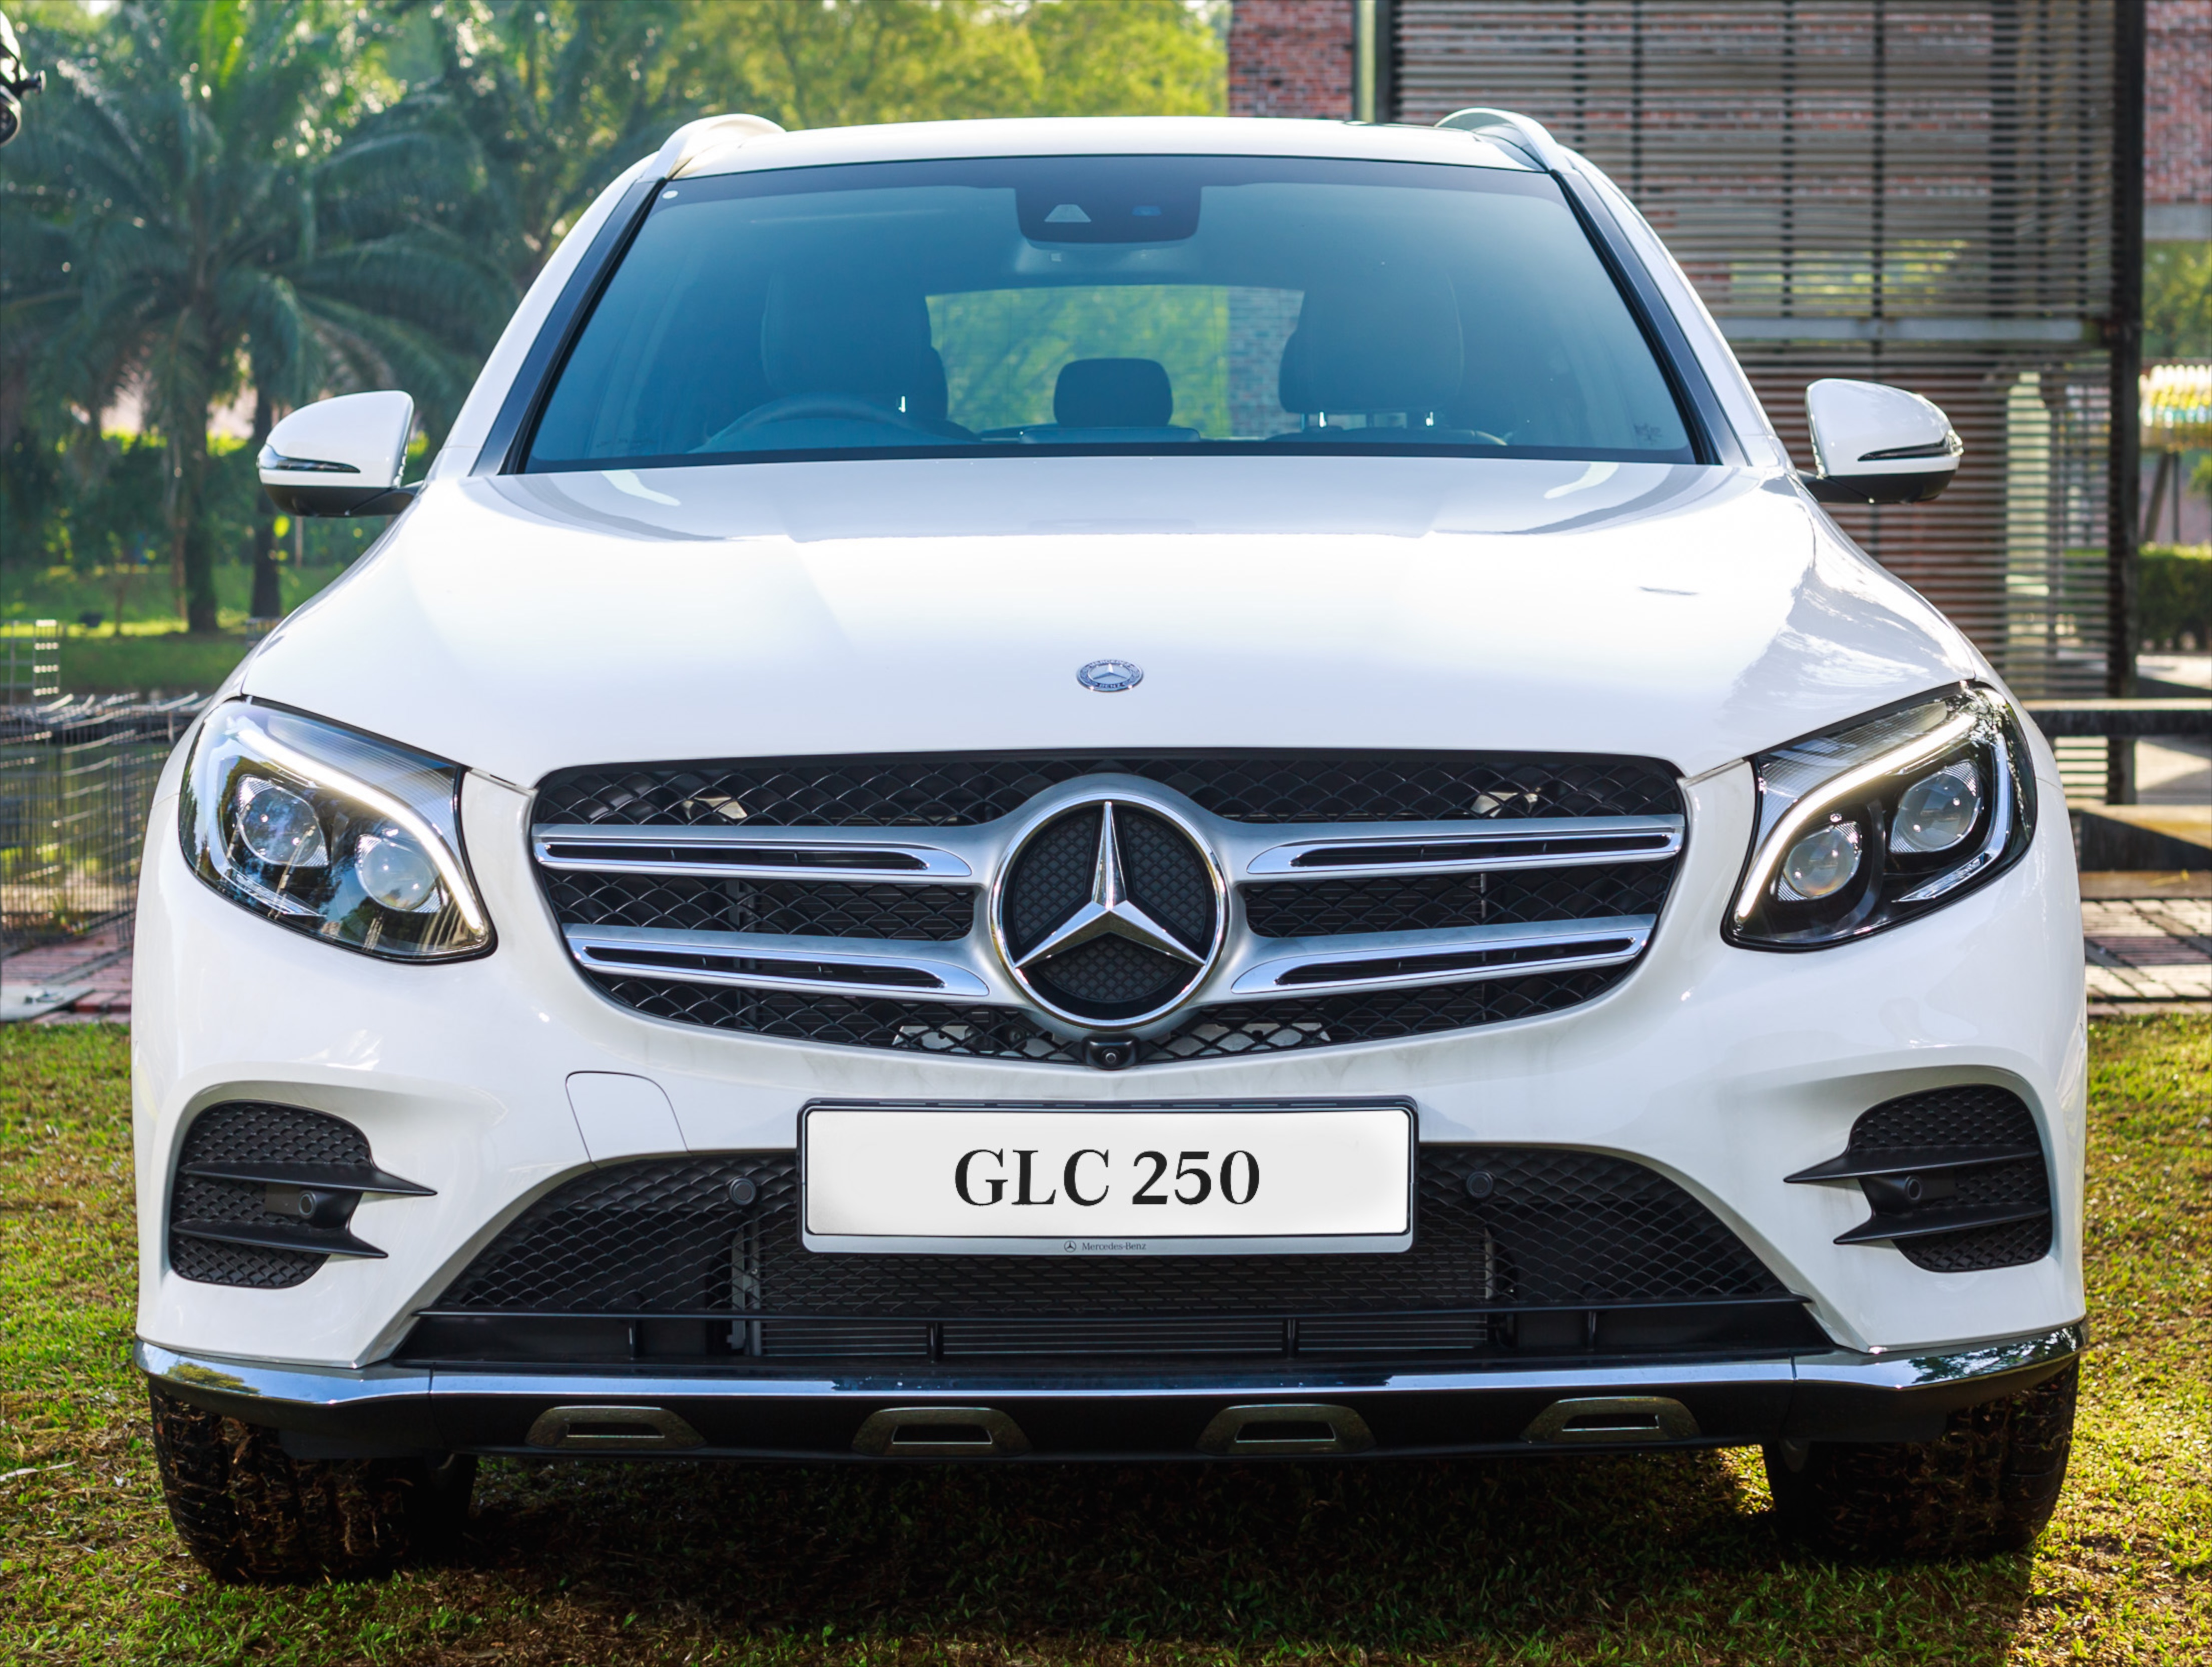 Mercedes Benz Glc 250 Debuts In Malaysia Rm329k Image 428491